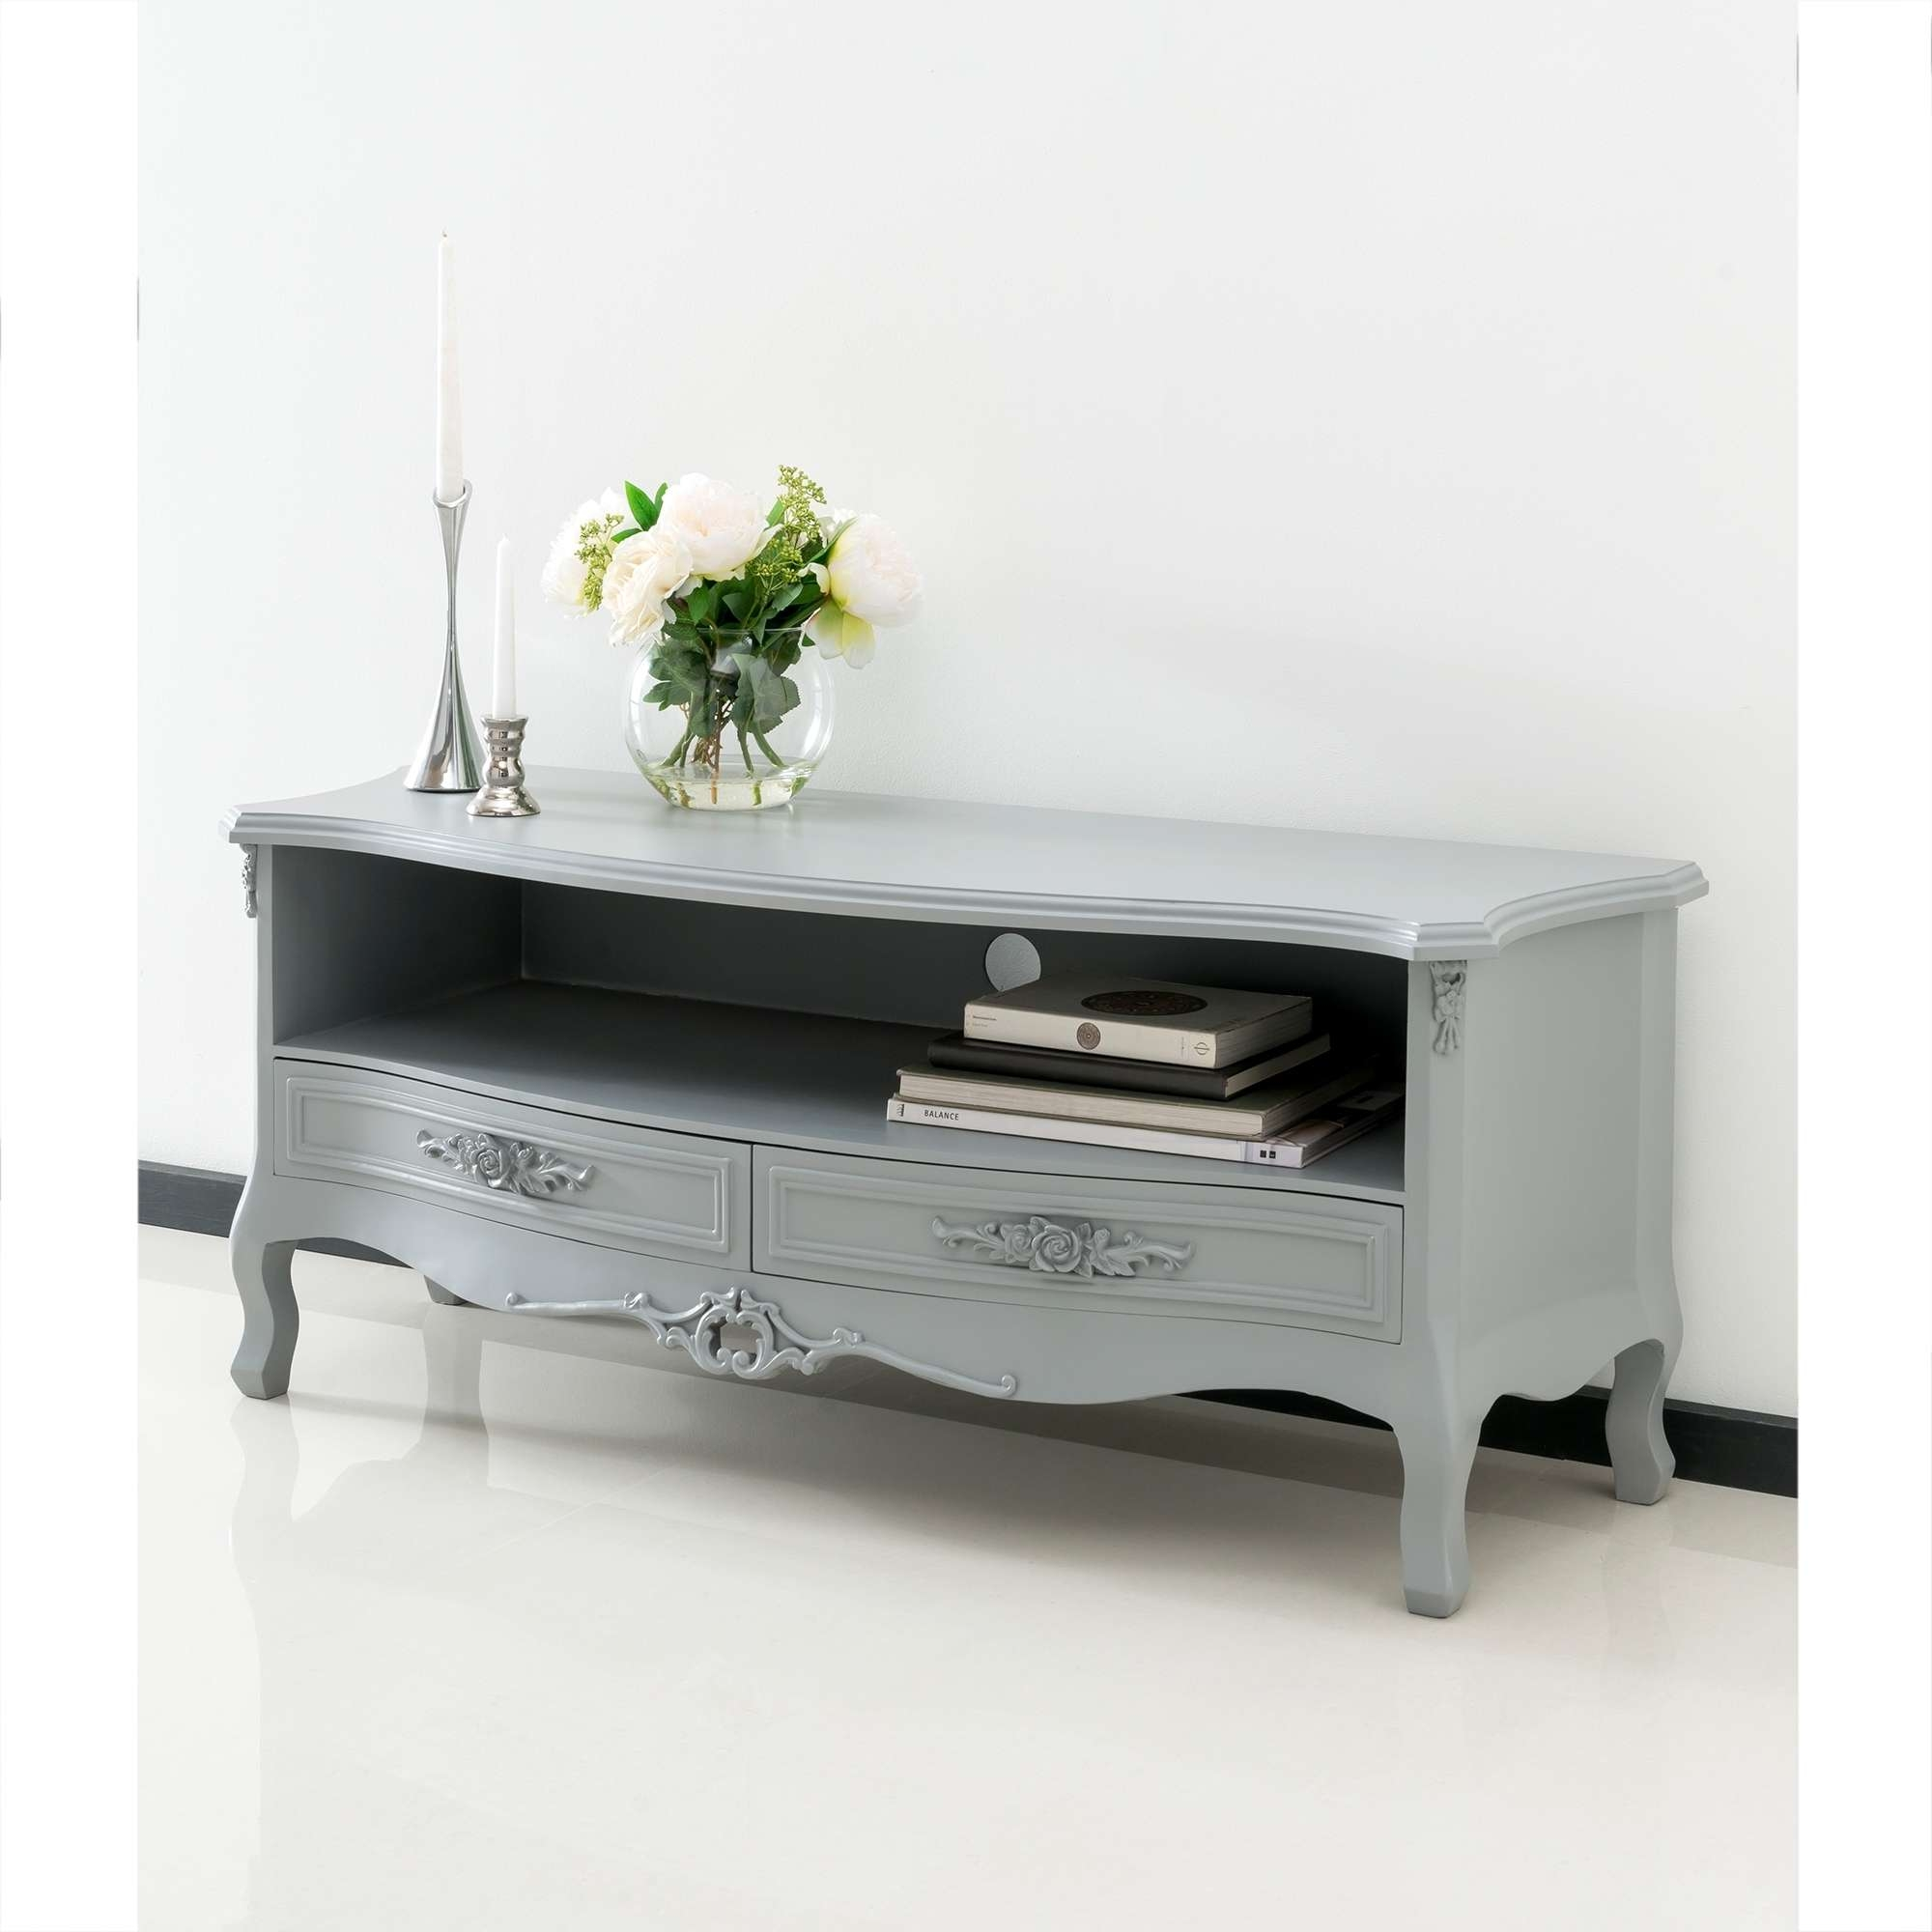 Stunning New Collection Of French Furniture | Homes Direct 365 Intended For Antique Style Tv Stands (View 12 of 15)